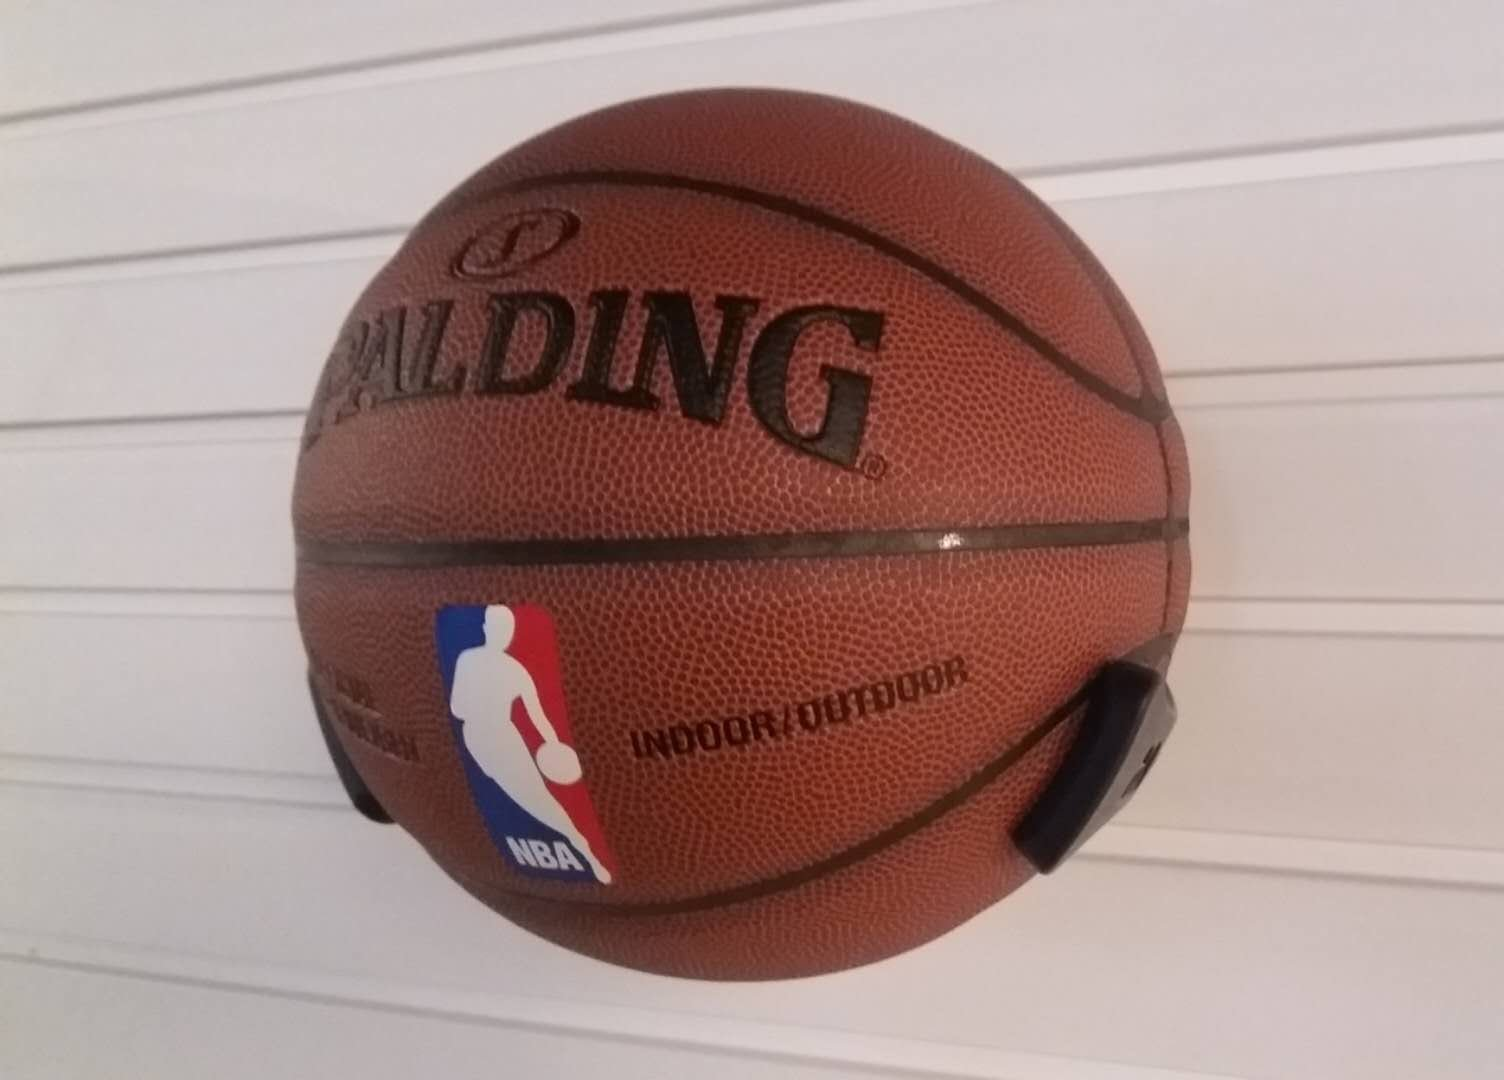 SAAINT Decorative Black Basketball Rack, Basketball Wall Hanger, Plastic Ball Claw